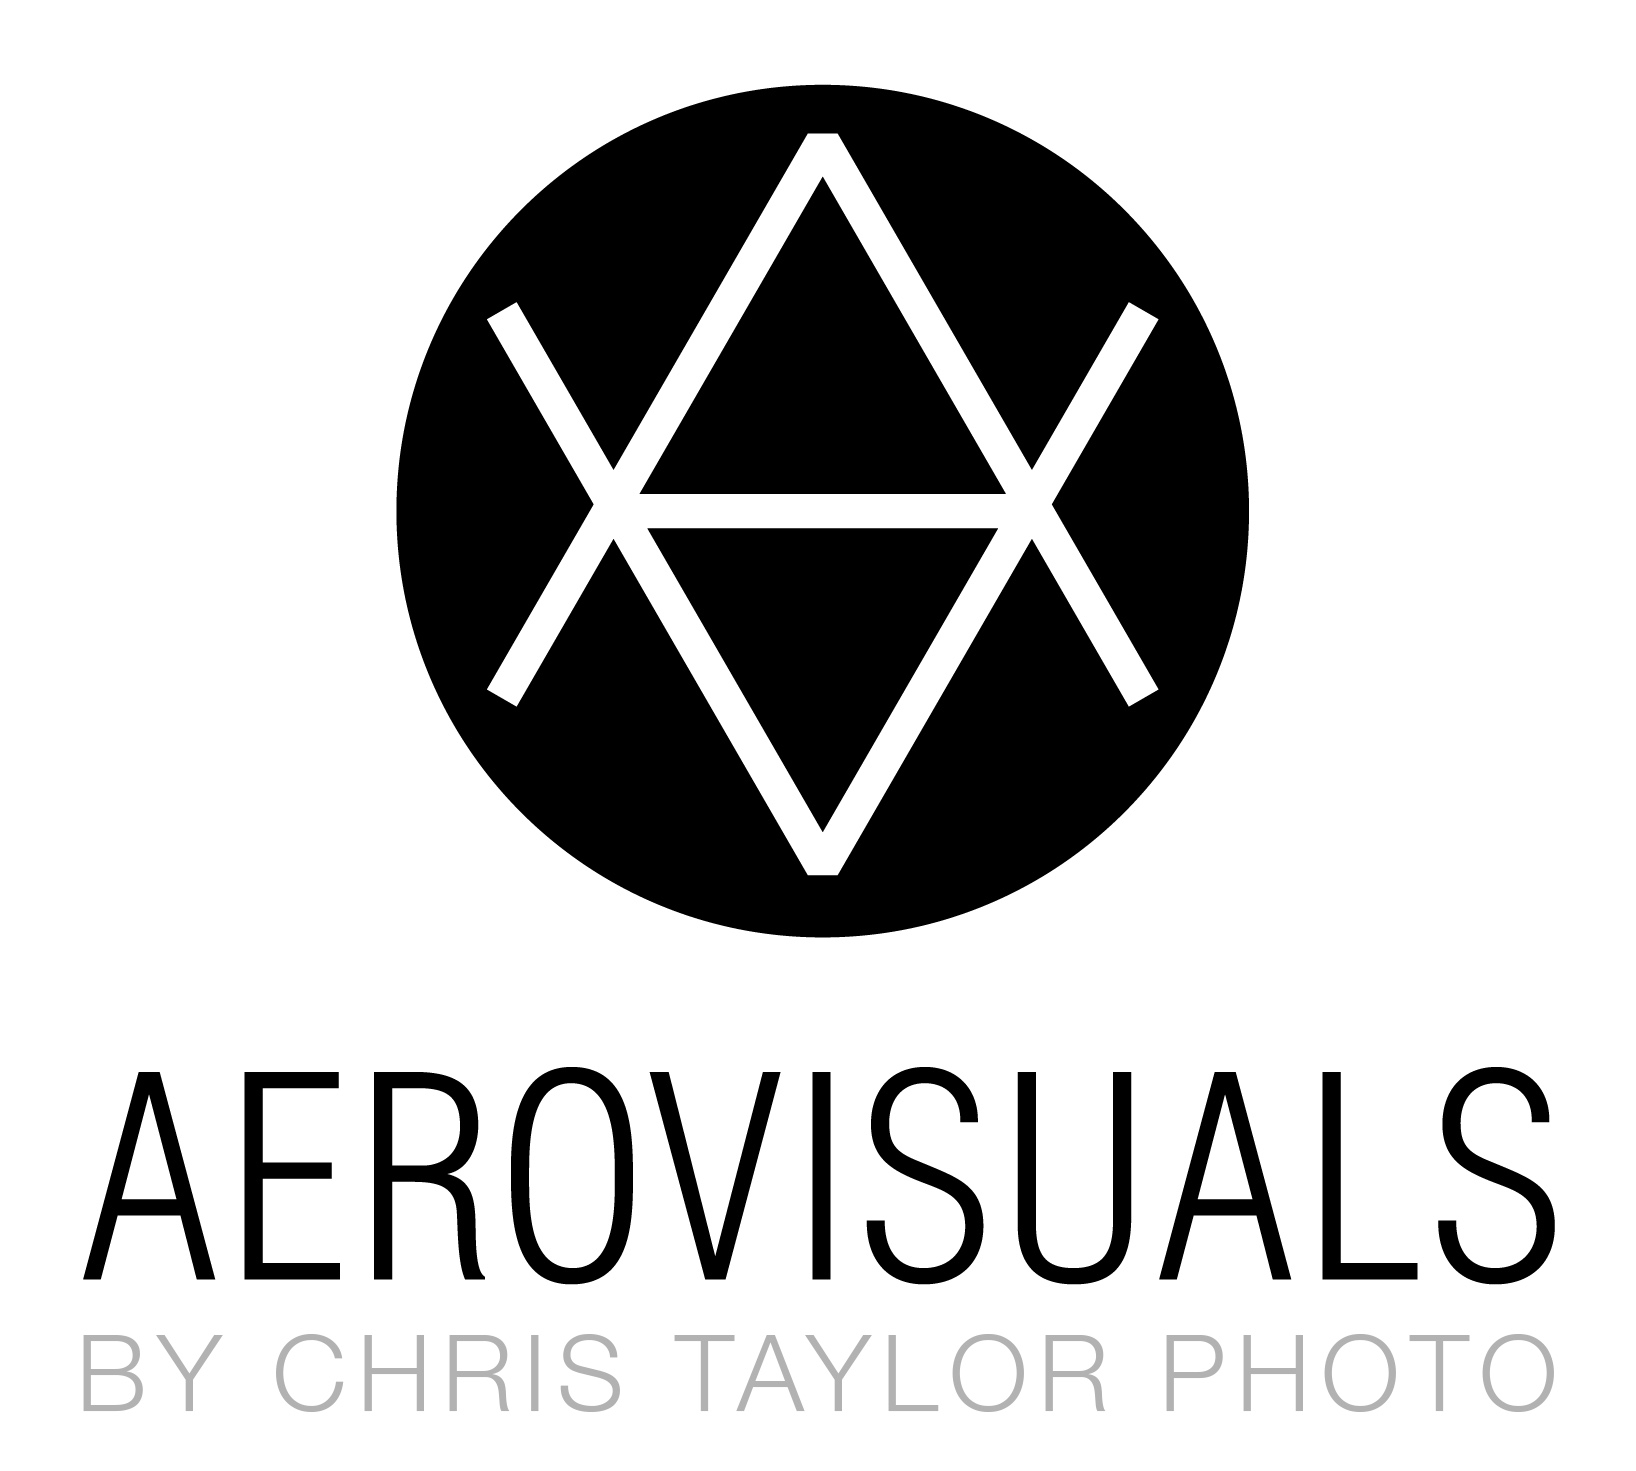 AeroVisuals by Chris Taylor Photo